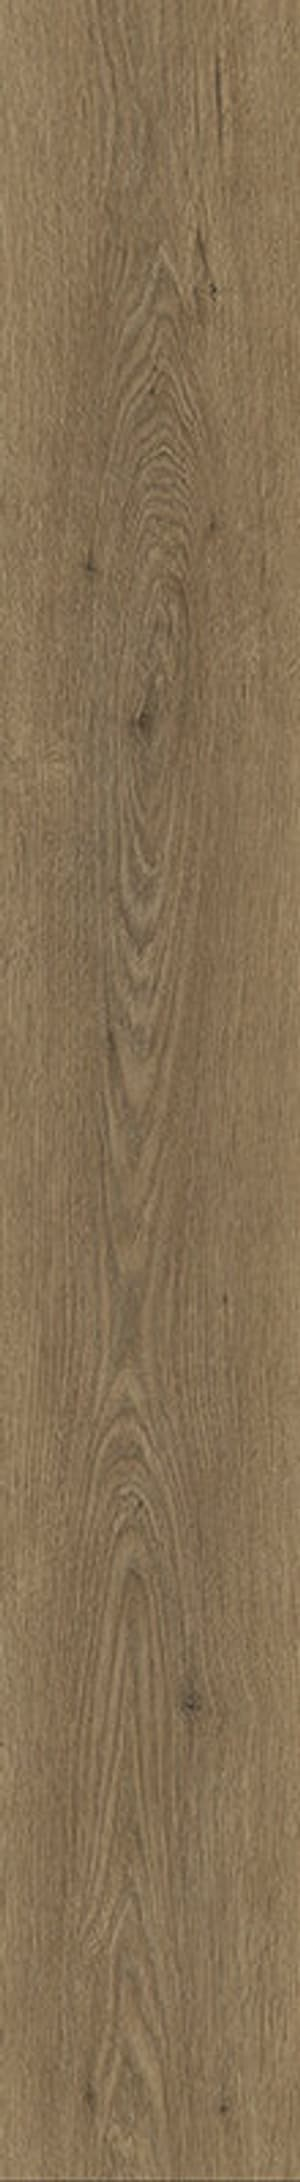 Swiss-Noblesse 8 mm, Rovere marrone